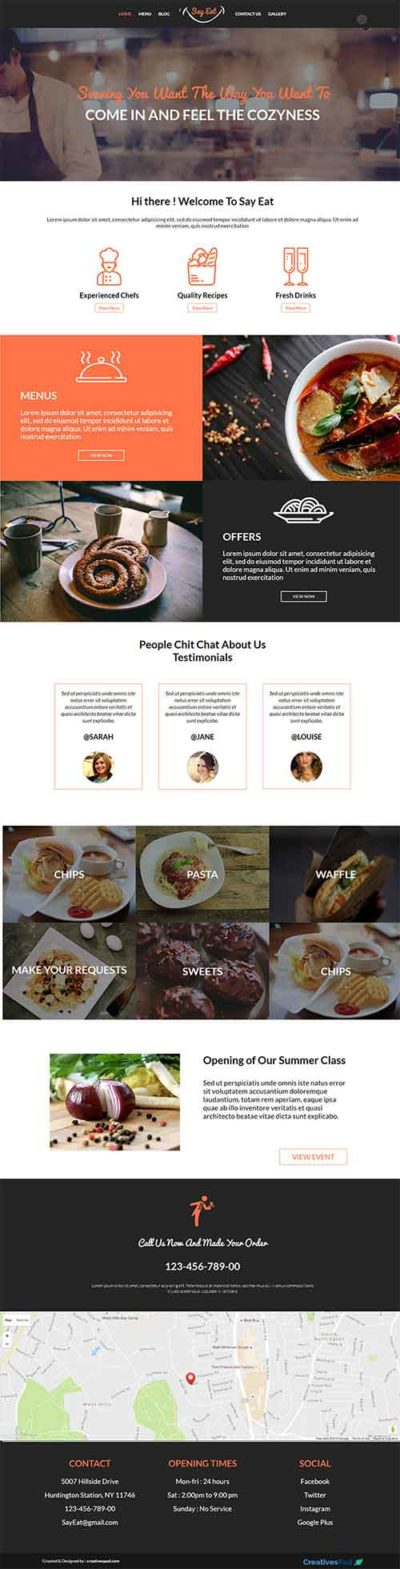 Food drink layouts for divi on theme page